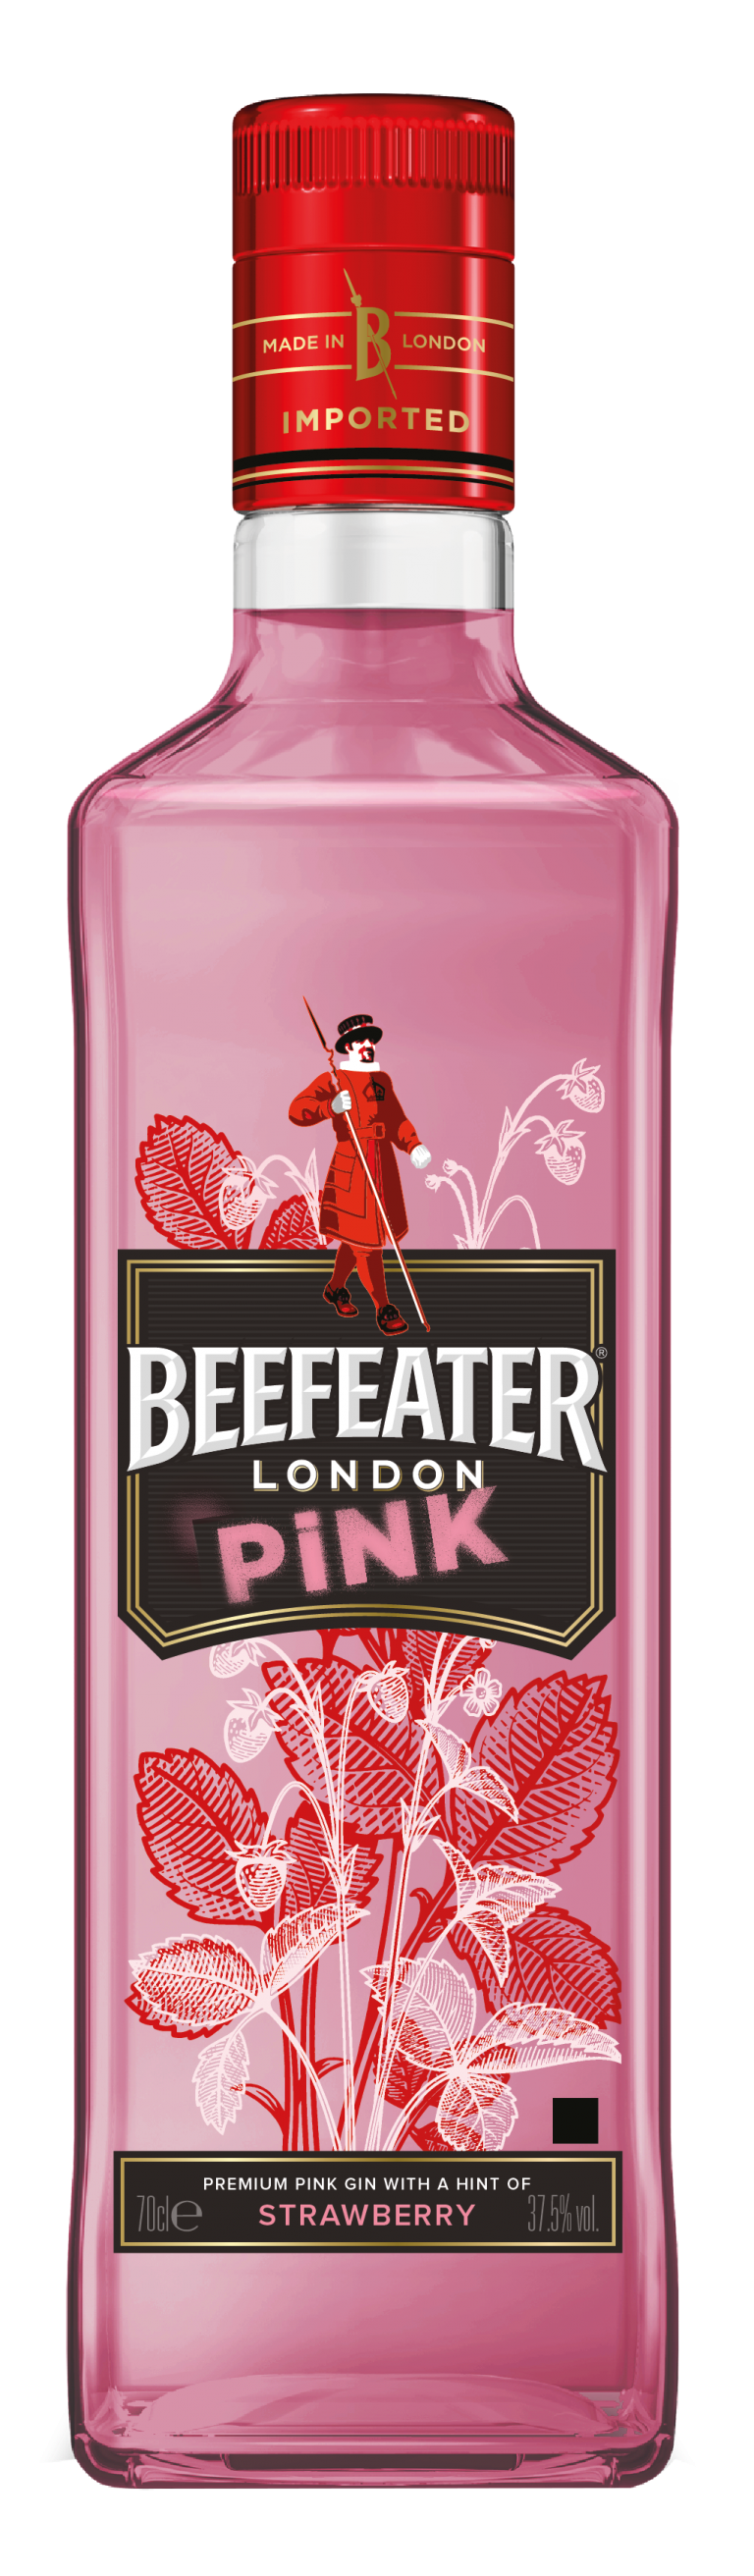 Beefeater-Pink